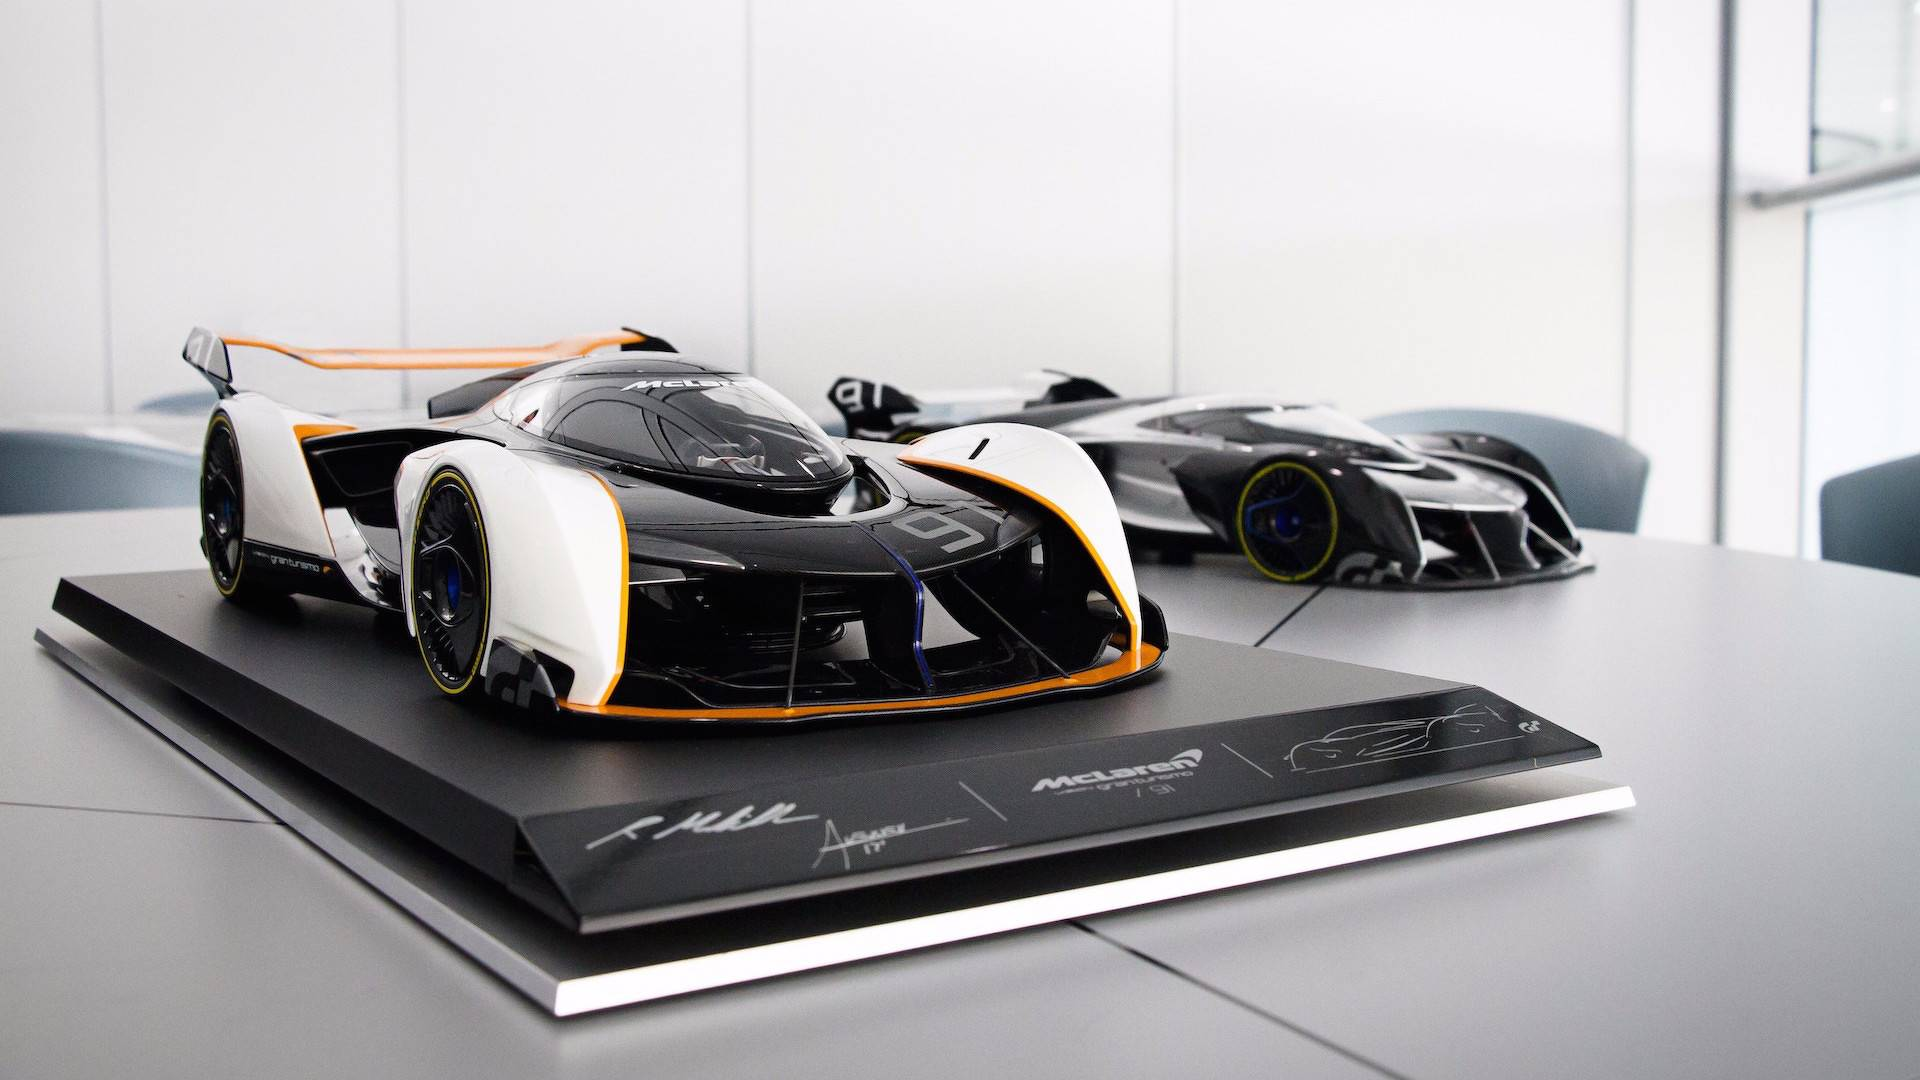 mclaren-ultimate-vision-gt-scale-model (31)